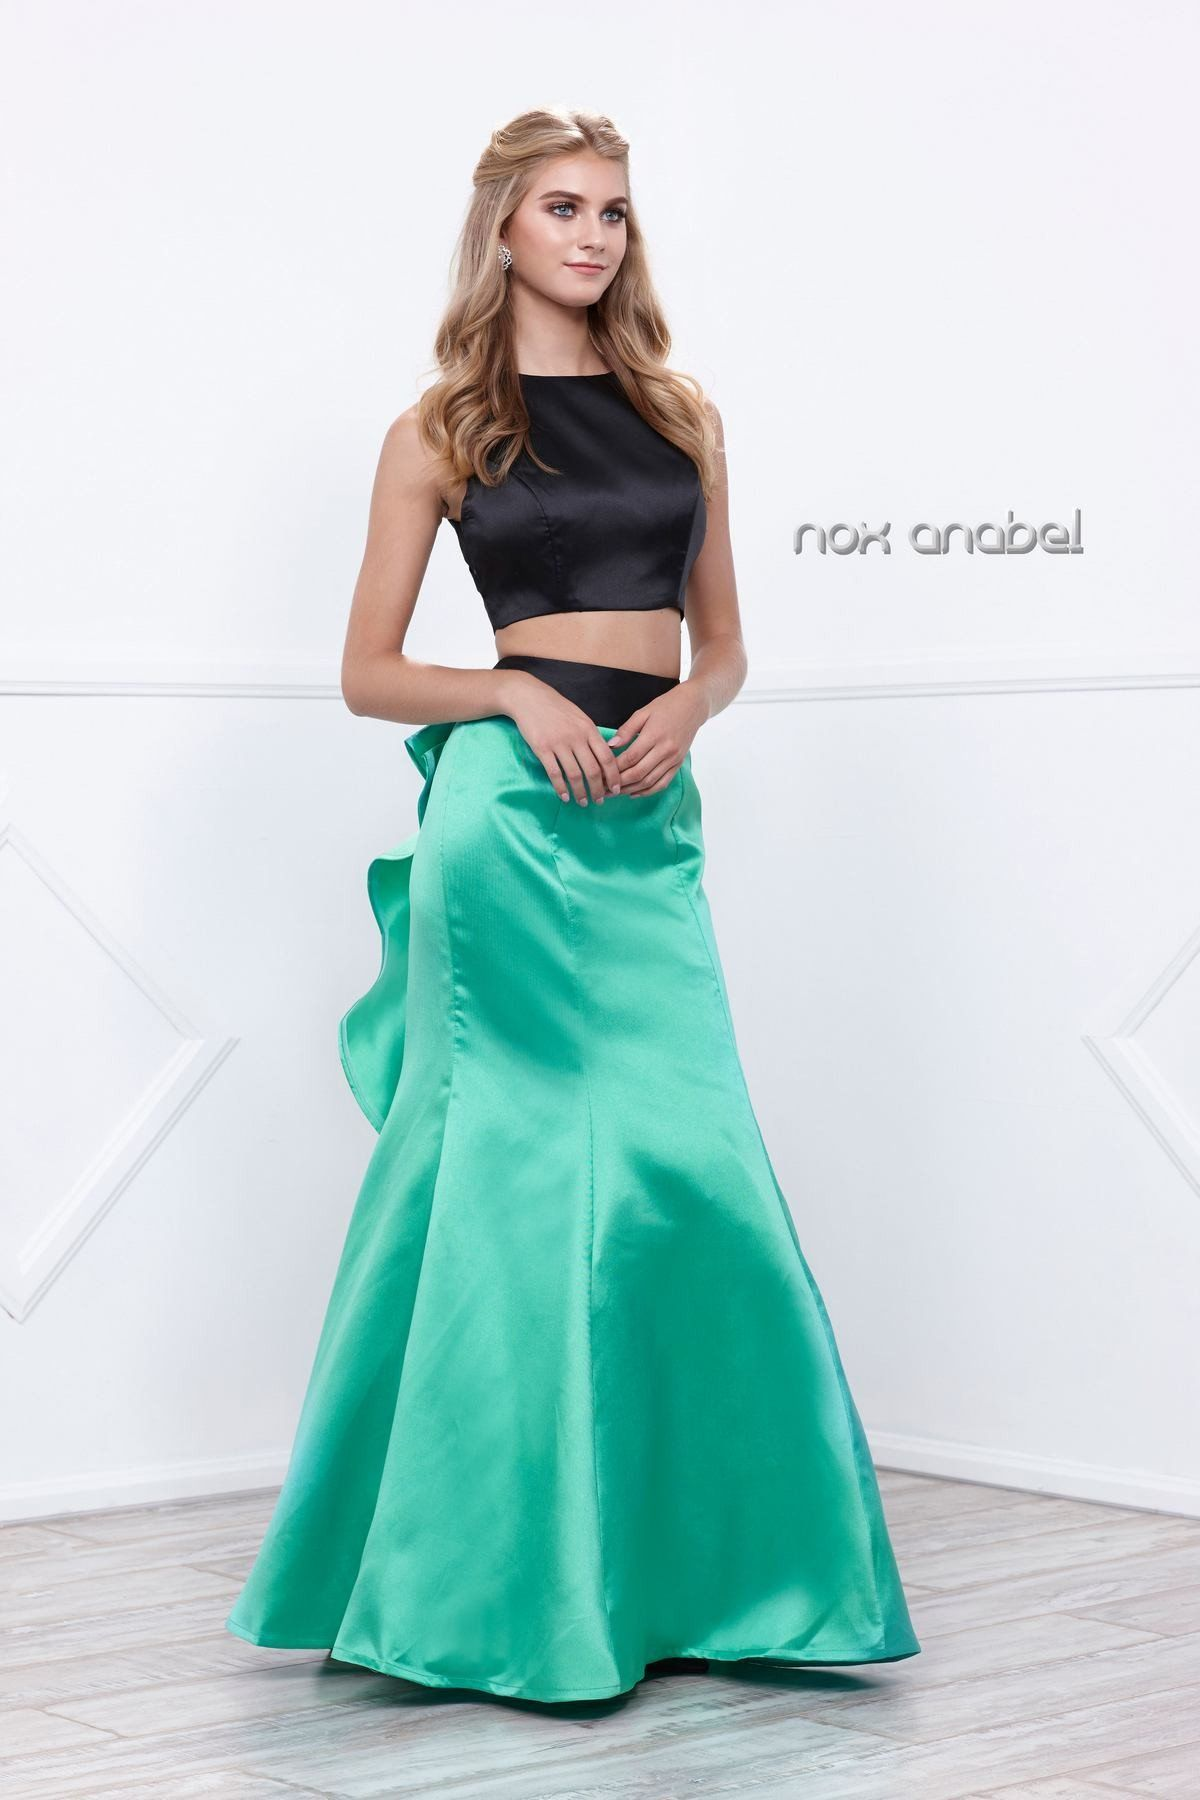 cc4e138f1d1e Long Two-Piece Mermaid Dress by Nox Anabel 8292 | Prom/Formal ...